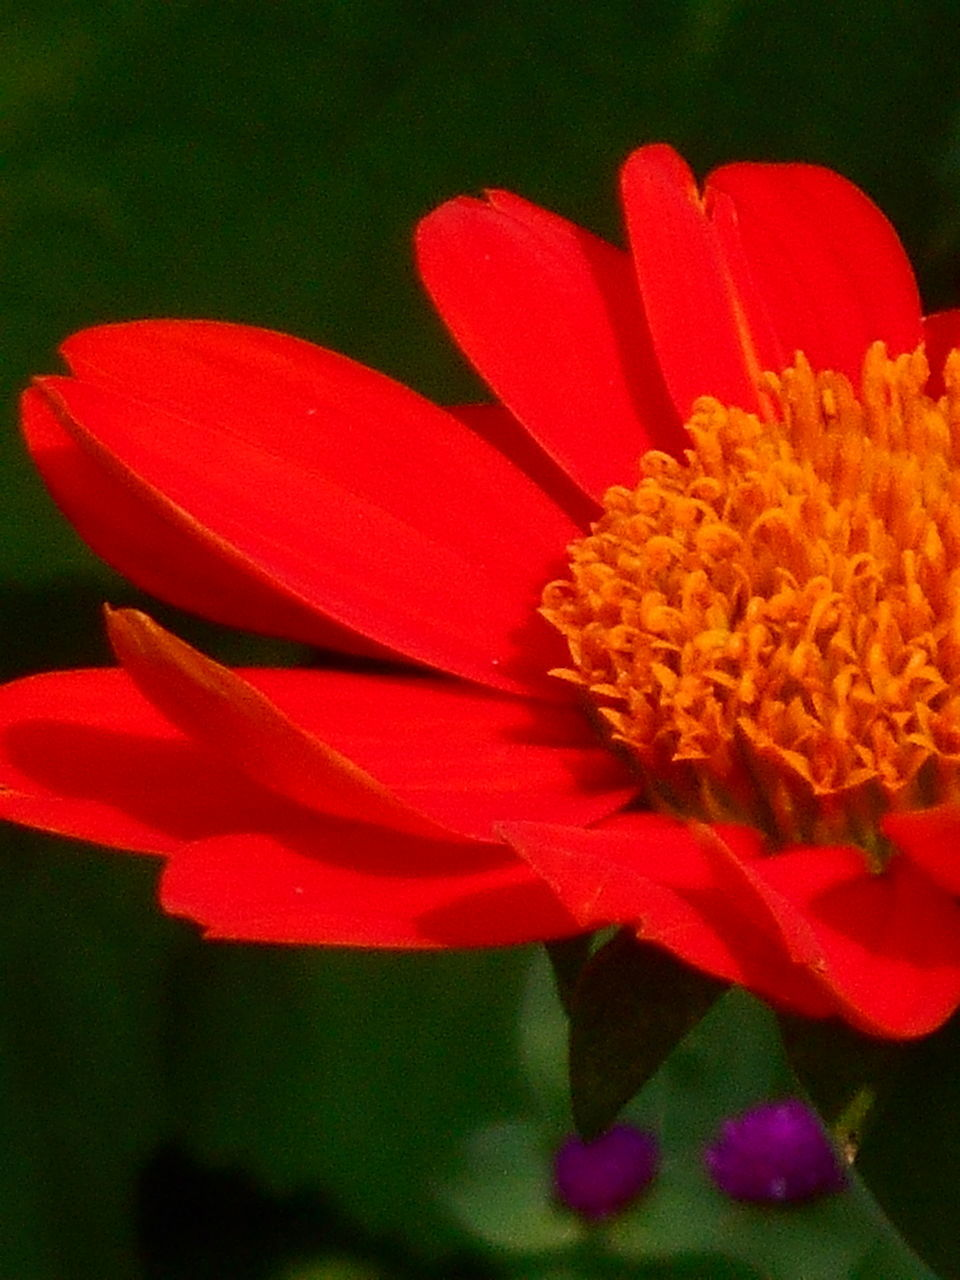 flower, petal, flower head, growth, freshness, fragility, beauty in nature, red, nature, plant, close-up, no people, blooming, pollen, outdoors, day, zinnia